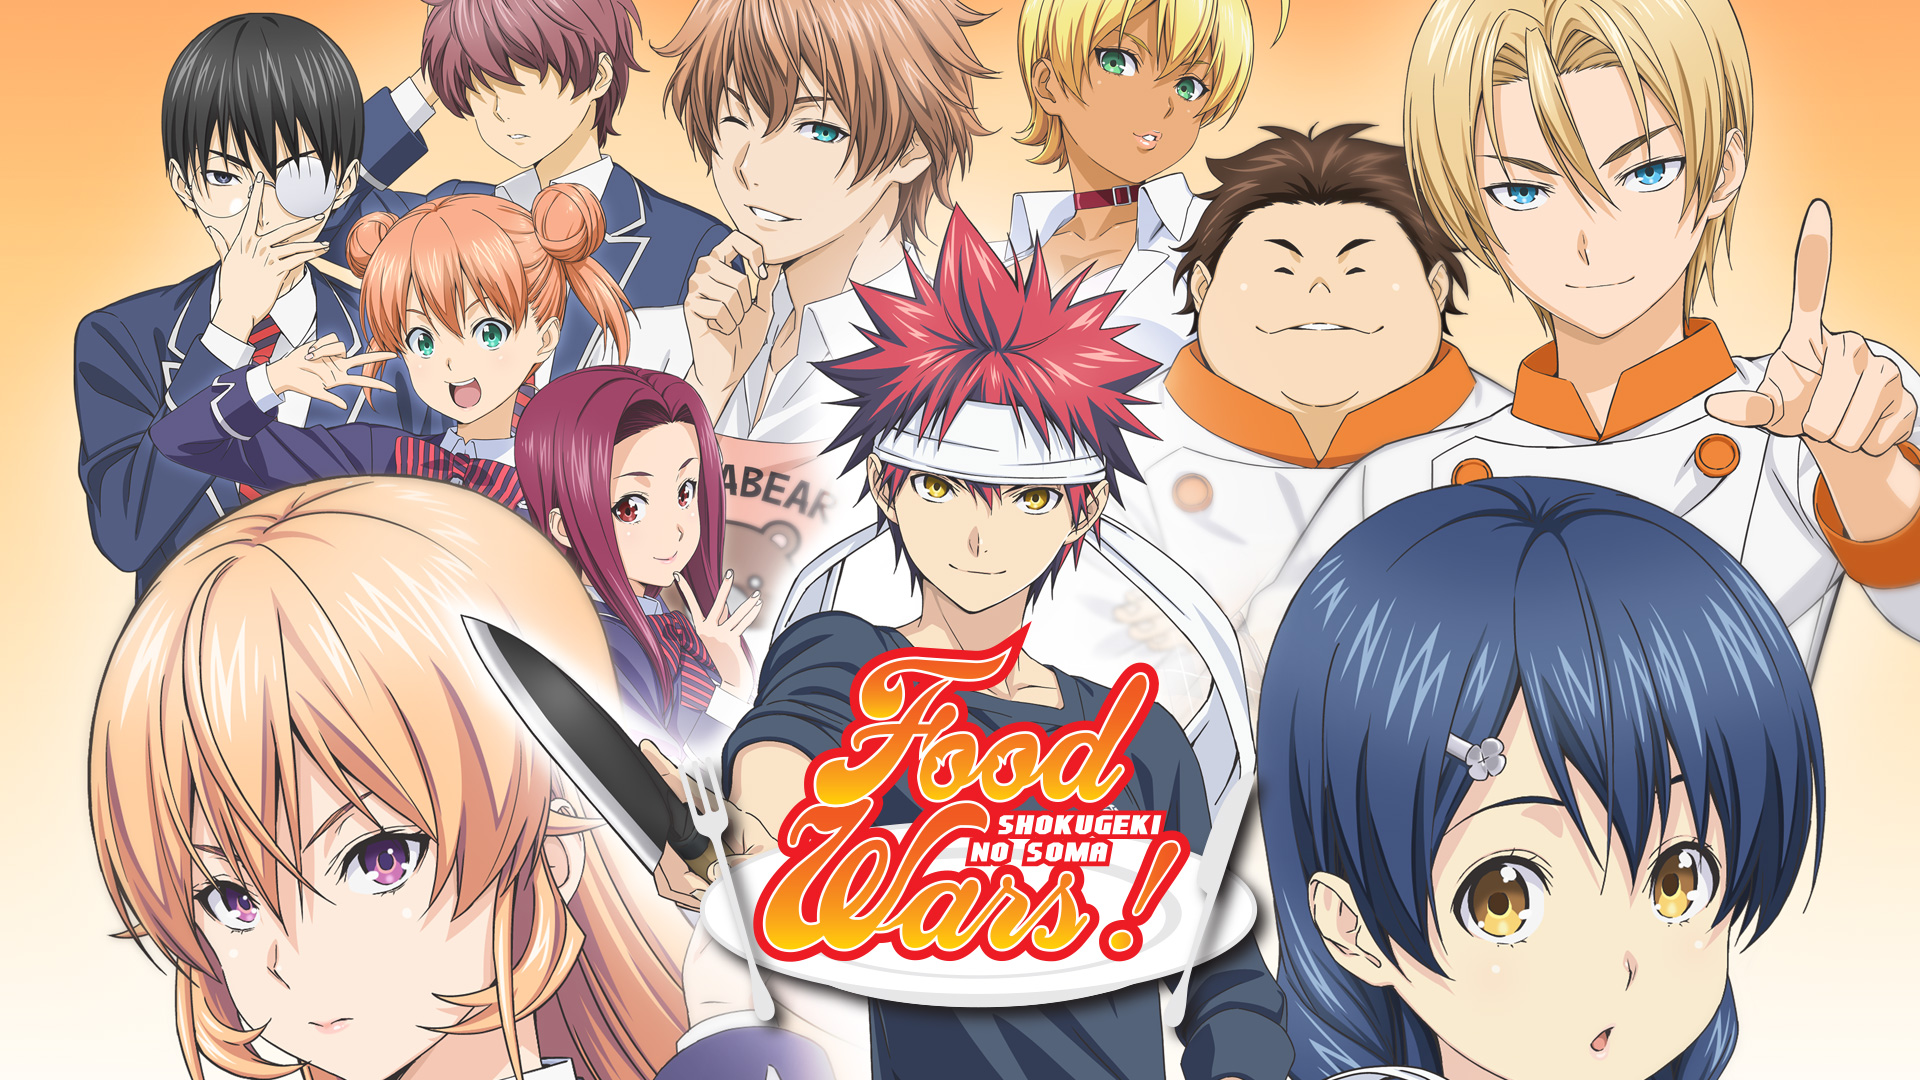 Food Wars Ikumi the silent bowl, the eloquent bowl - s1 ep7 - food wars!